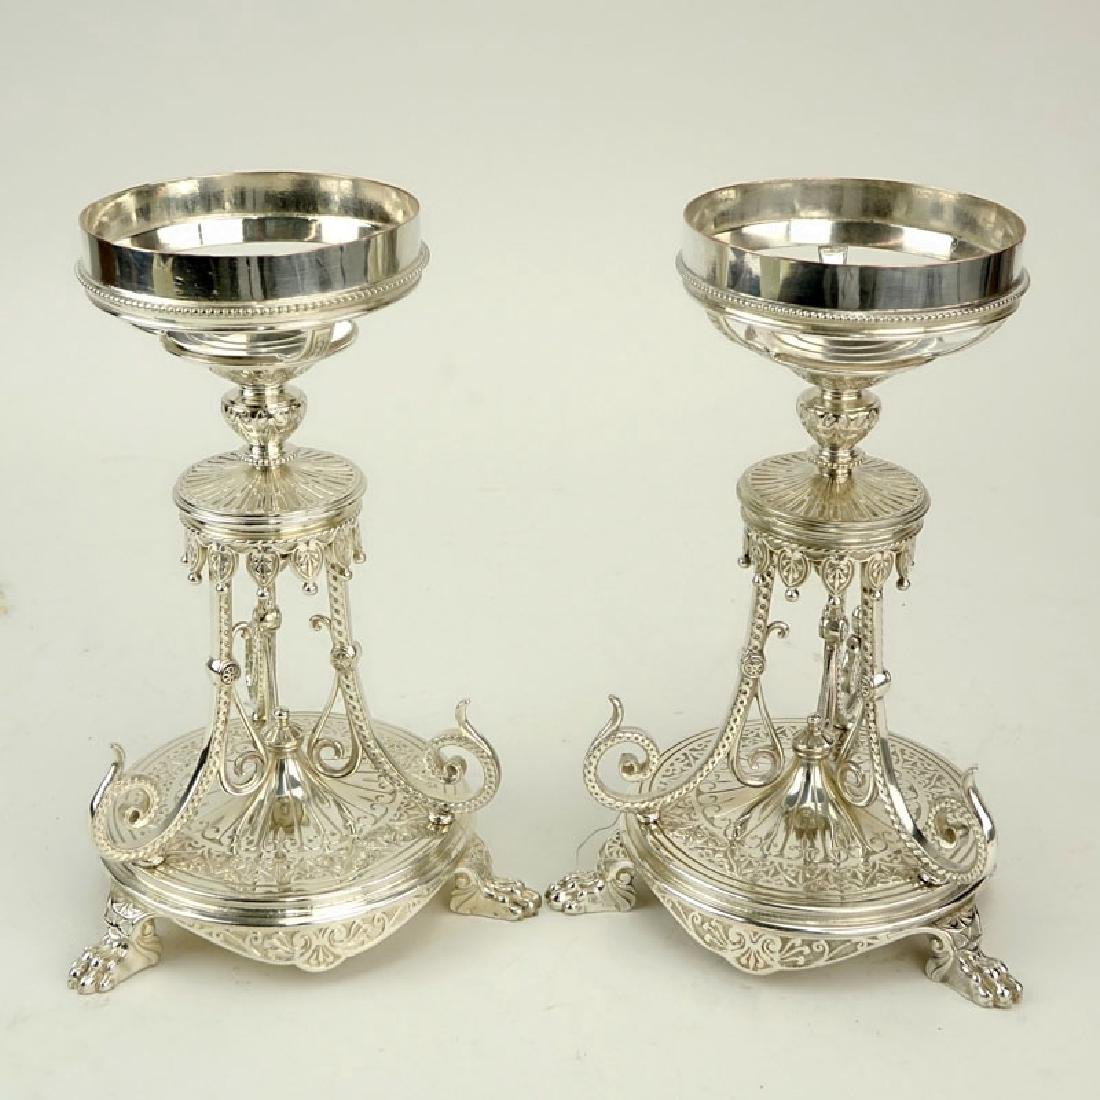 Pair of Elkington & Co Silver Plate Compote Bases.